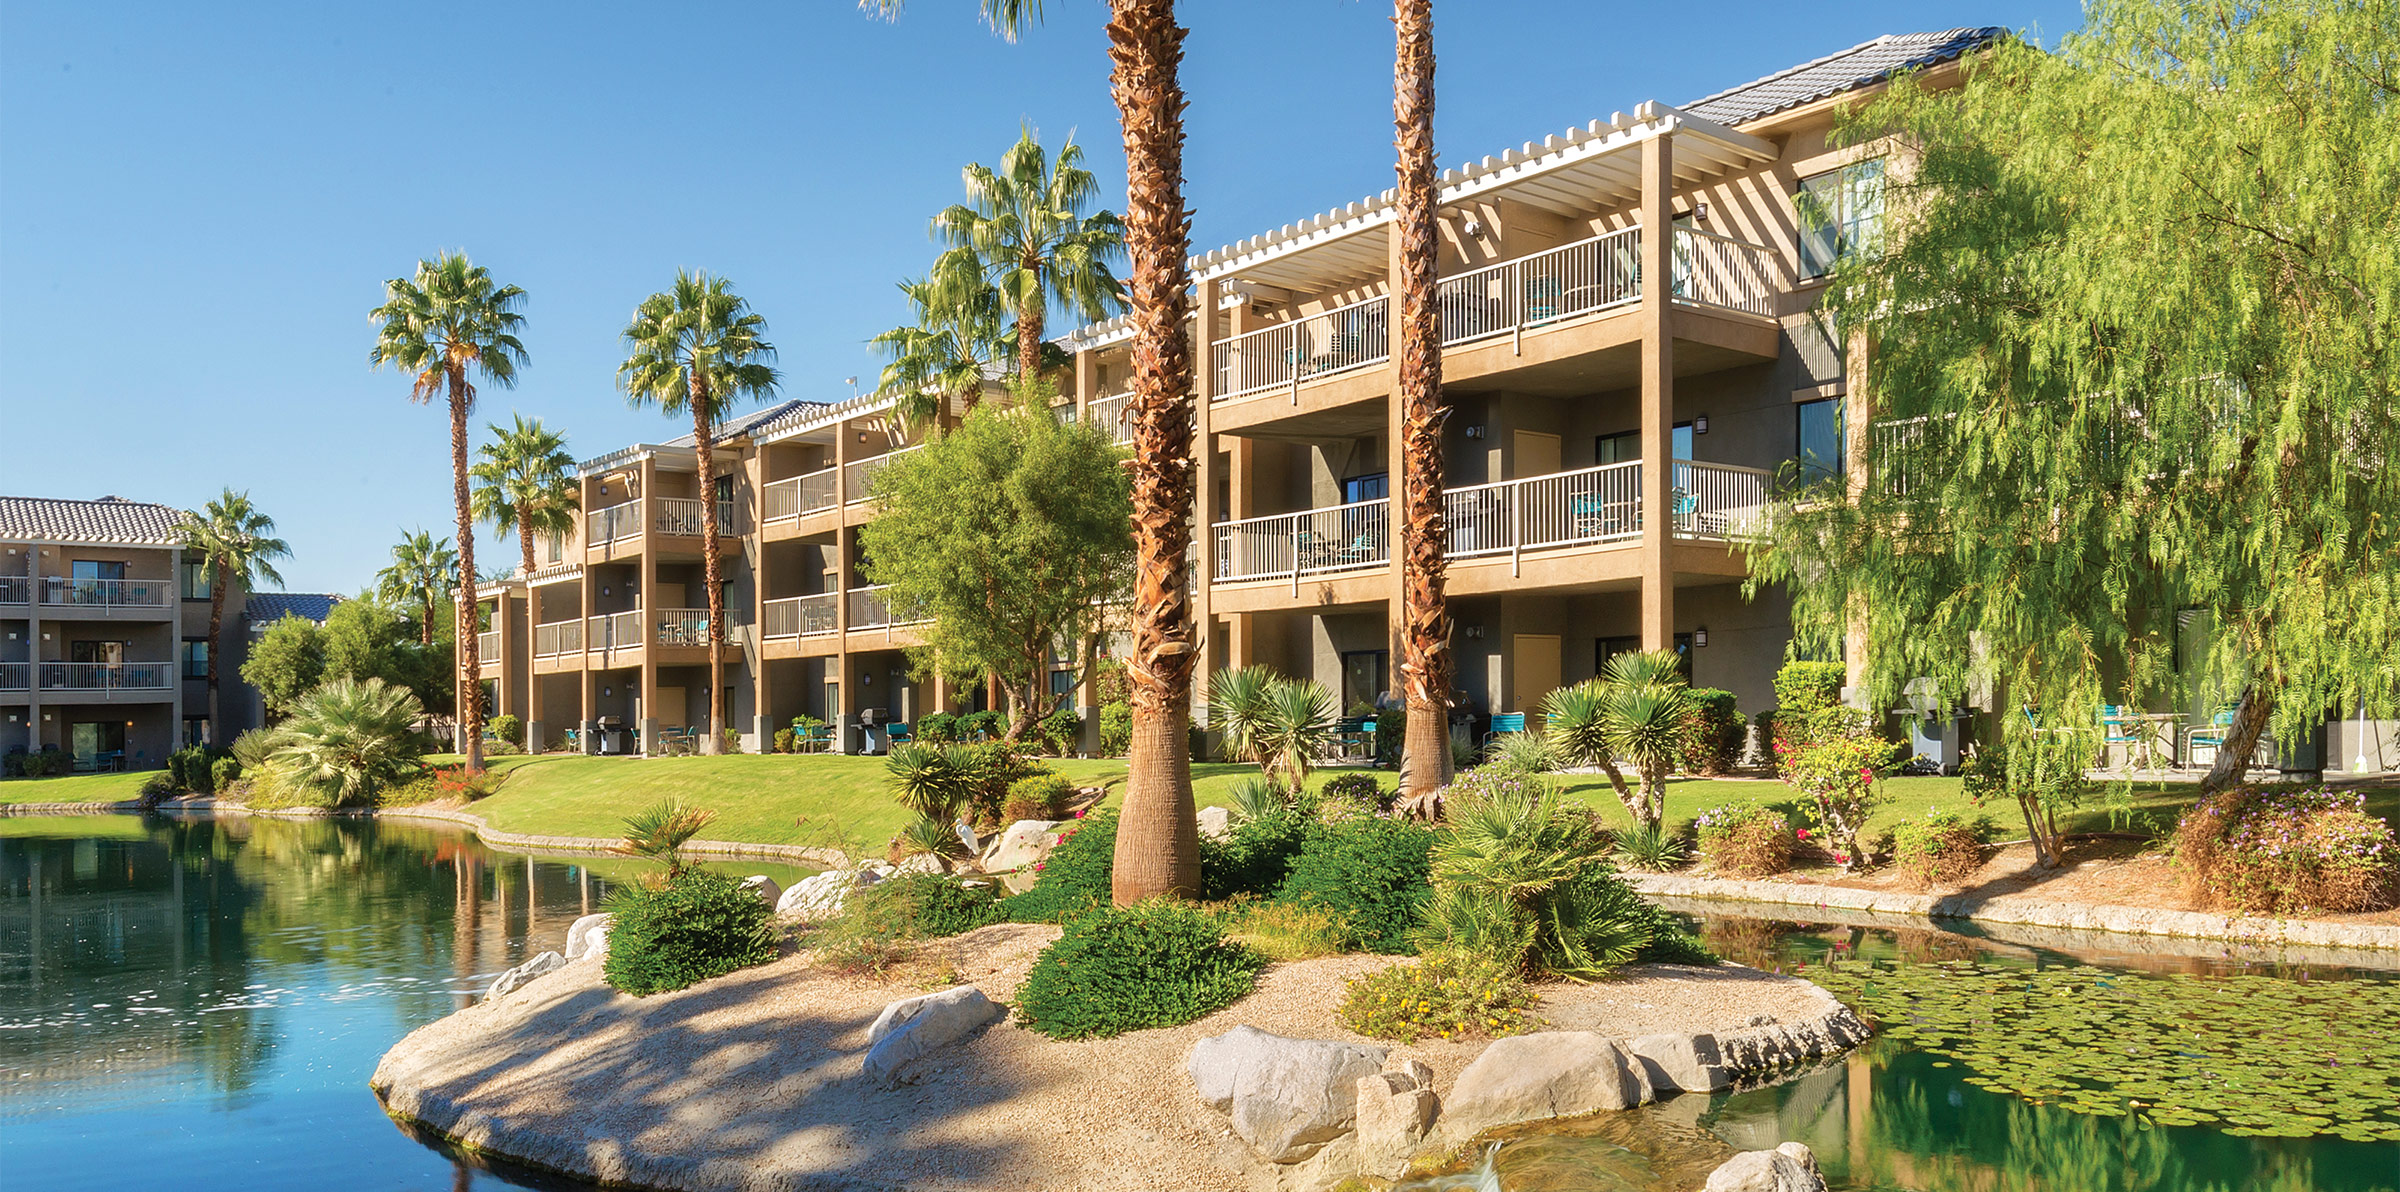 Apartment 2 Bedroom 2 Bath In Indio  CA   Palm Springs  5 miles from COACHELLA photo 18634364